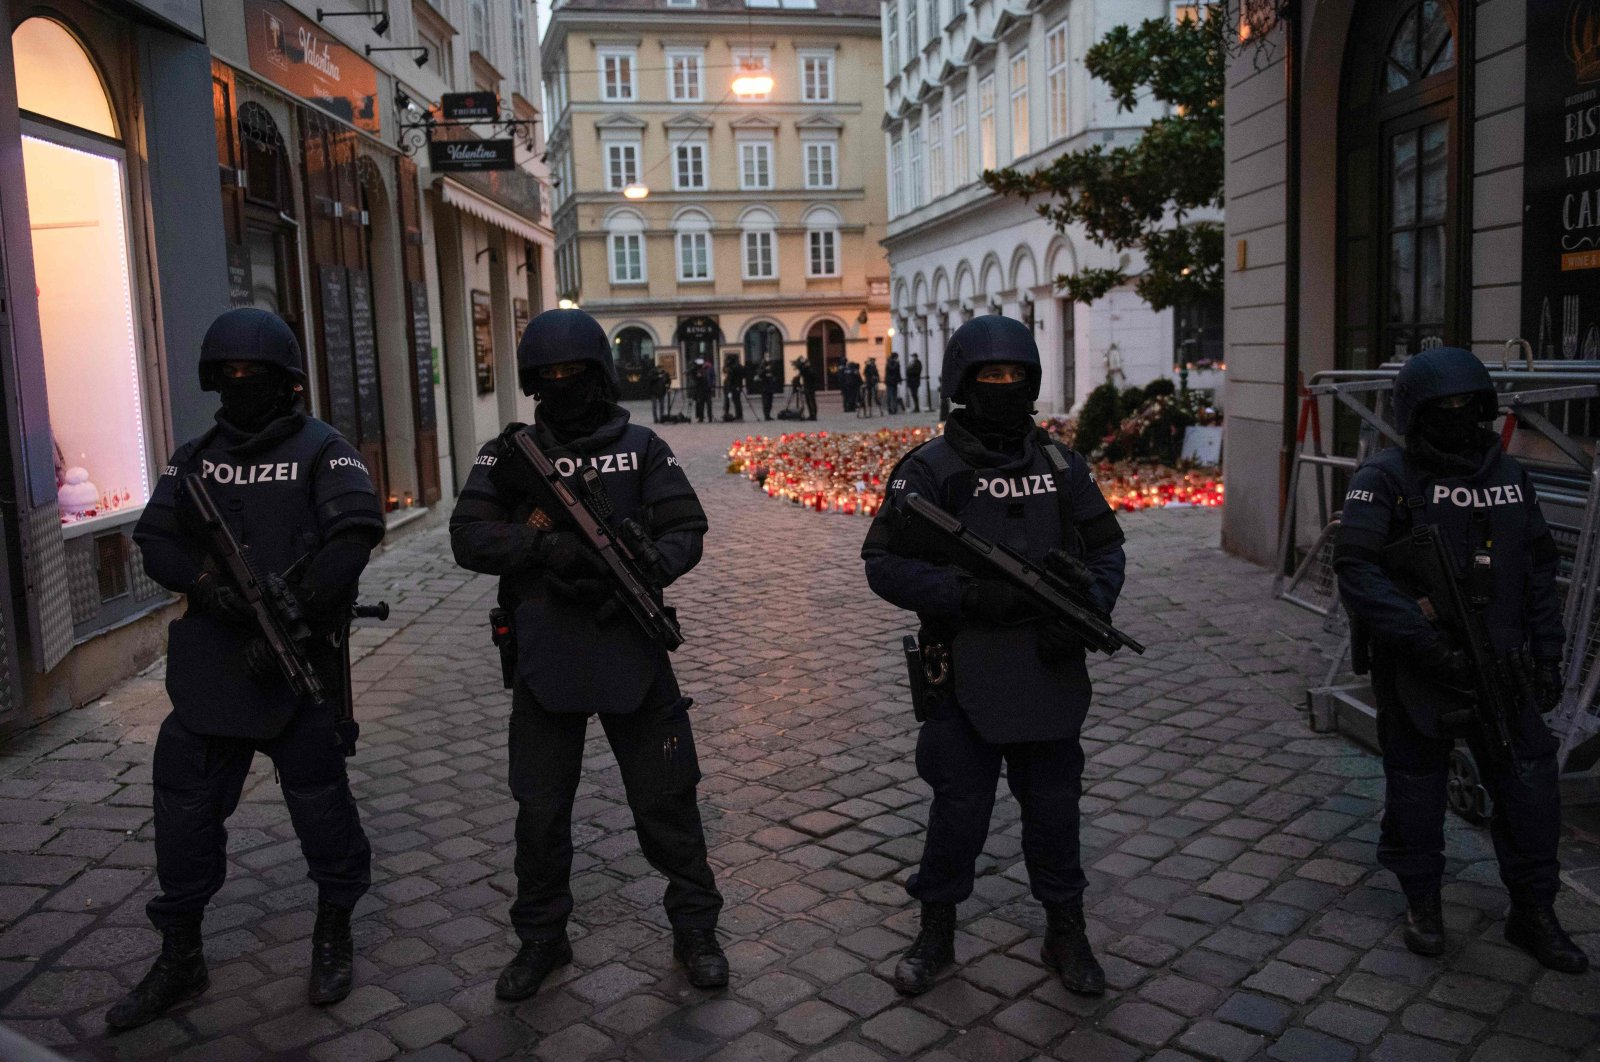 Armed police officers stand guard before the arrival of Austrian Chancellor Kurz and President of the European Council to pay respects to the victims of a terrorist attack in Vienna, Austria, Nov. 9, 2020. (AFP Photo)